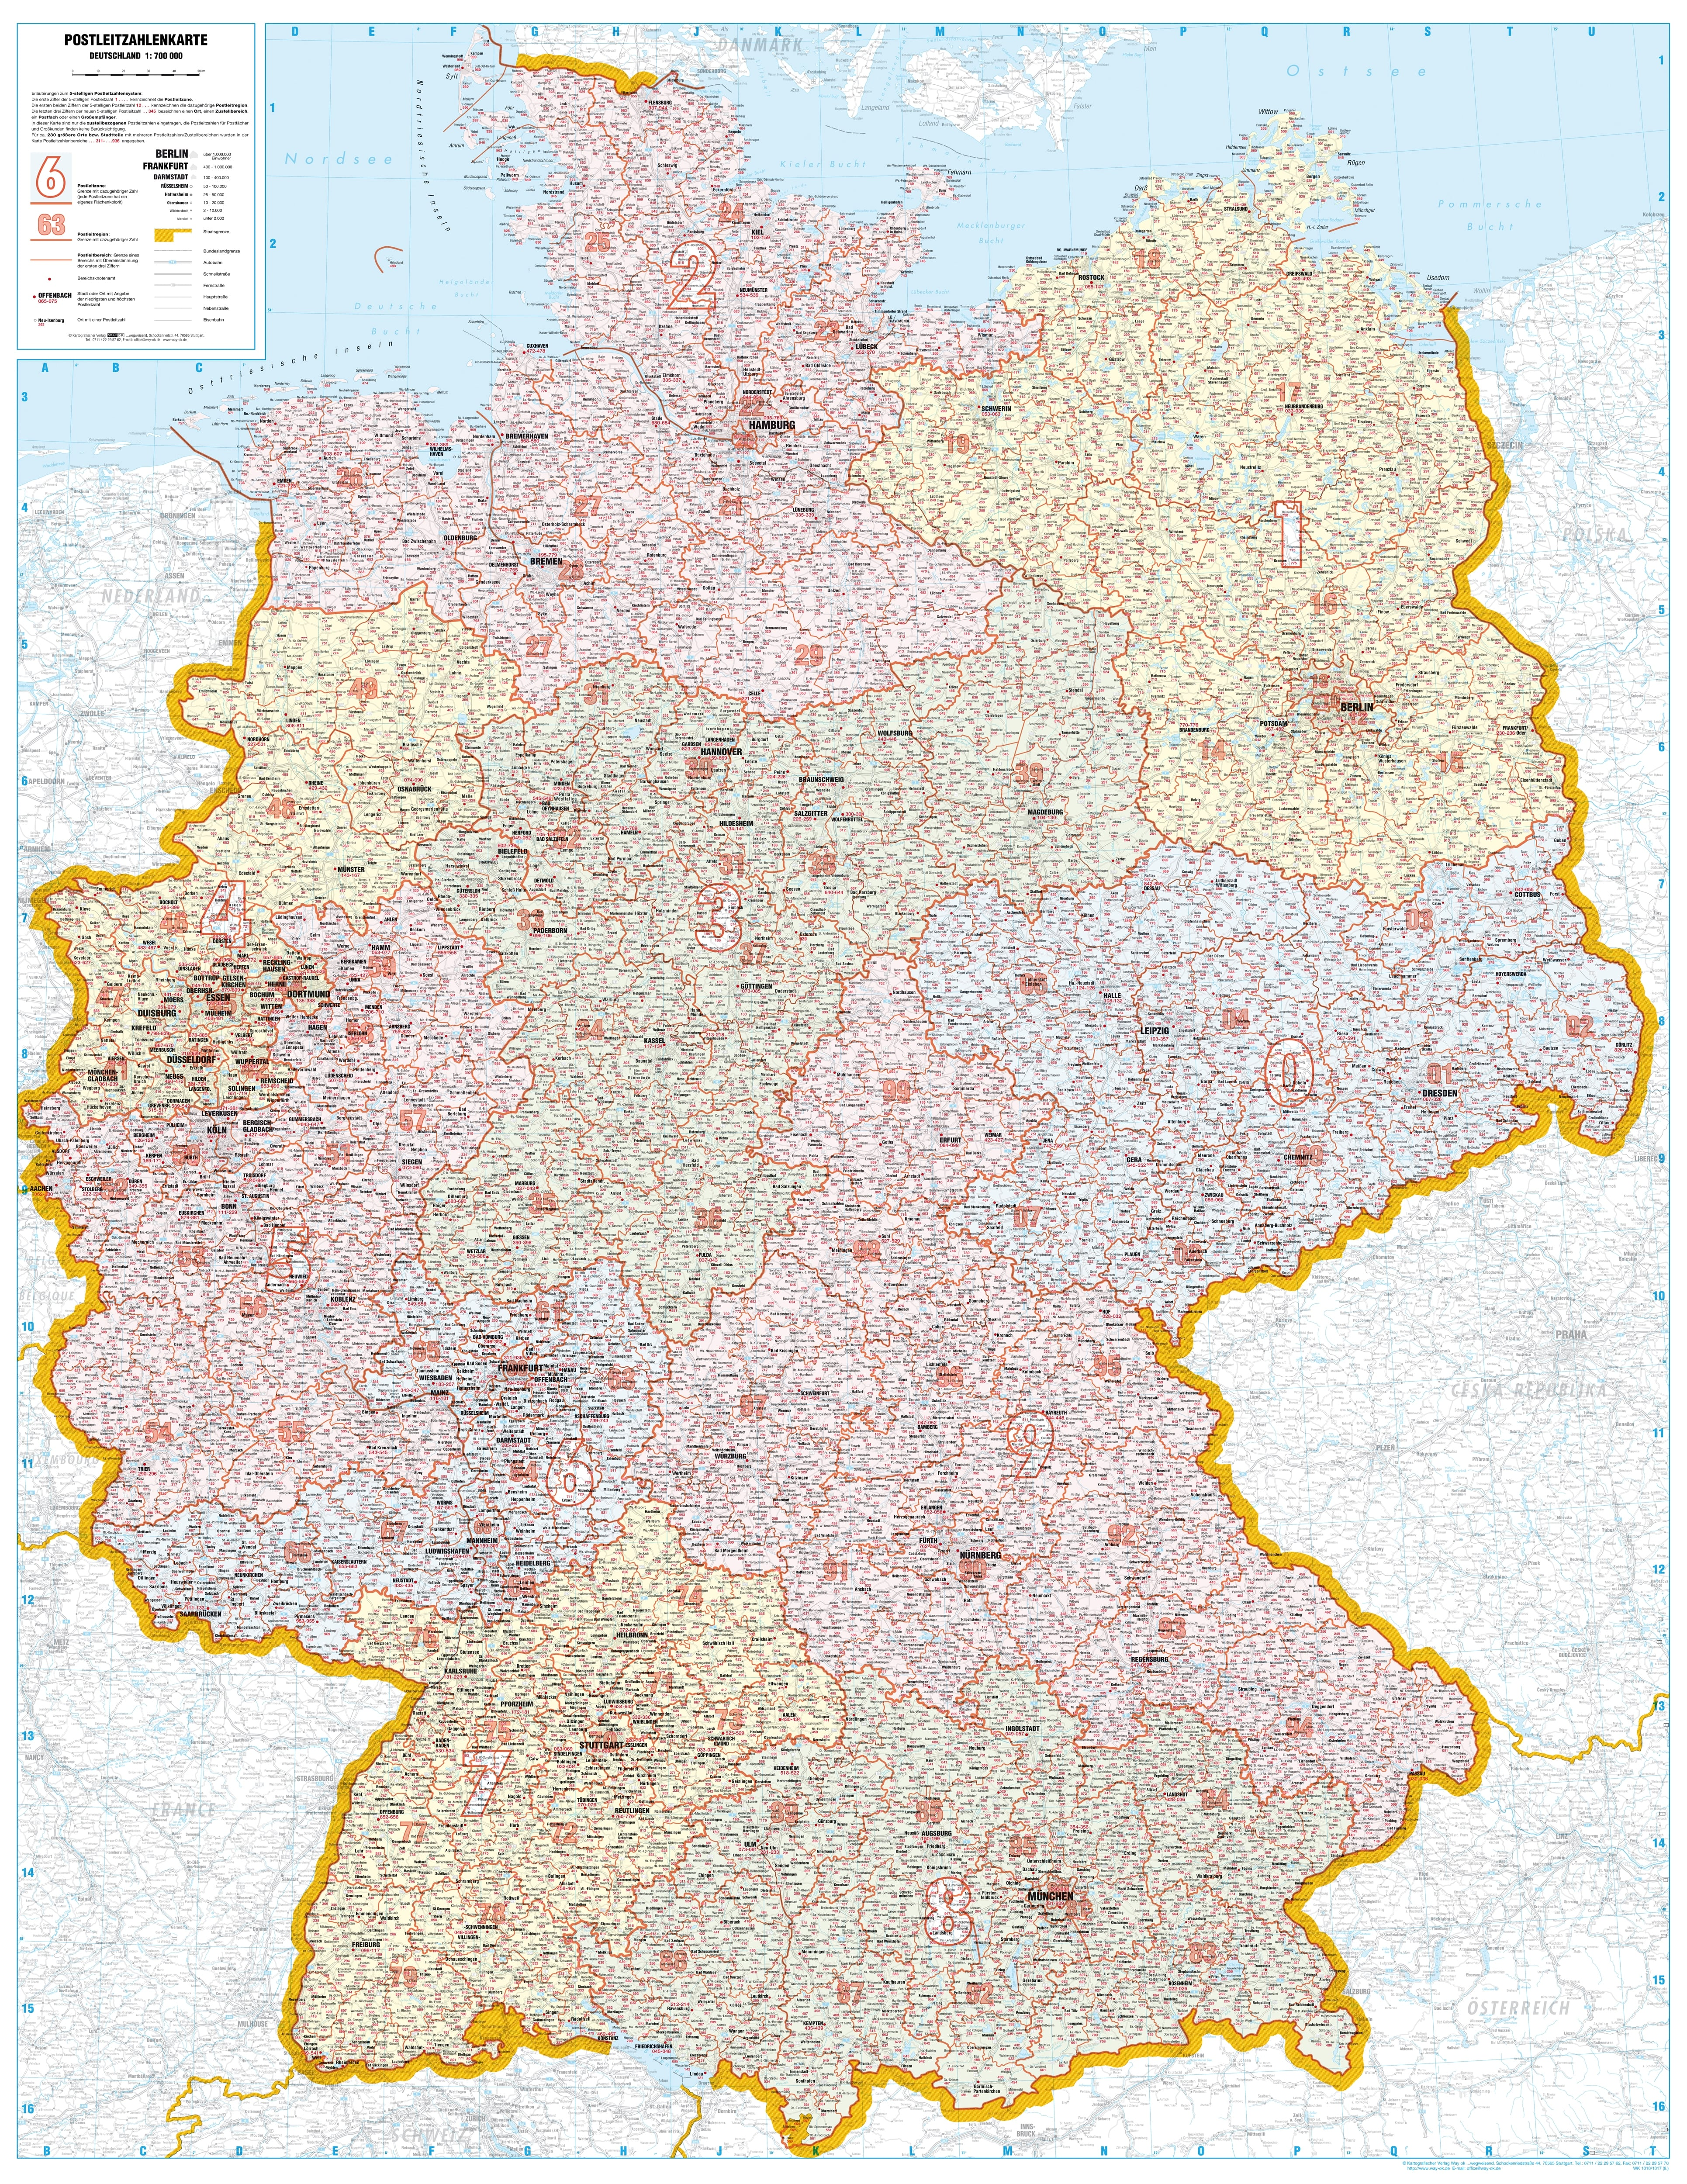 Map Of Deutschland Germany.Post Code Map Germany 98 X 128cm Germany Wall Maps Europe Wall